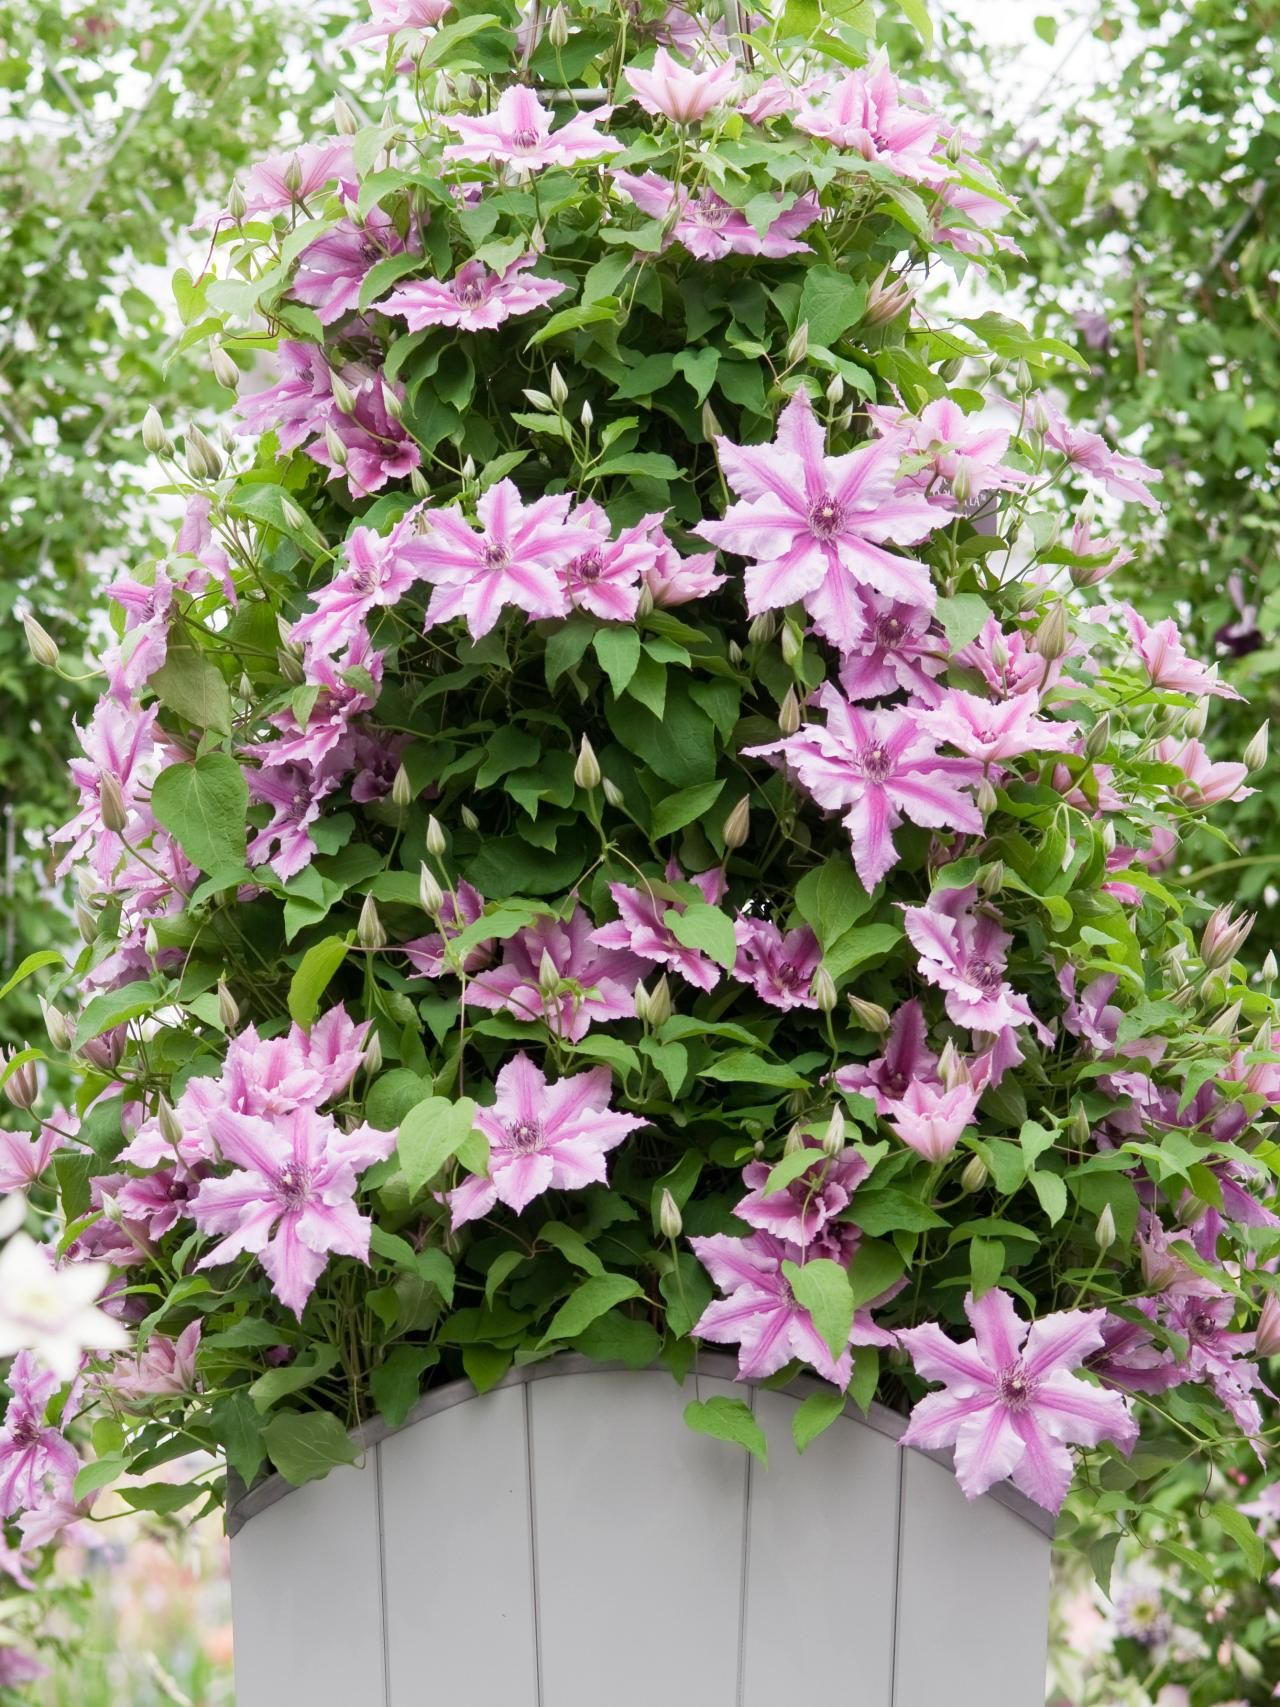 Trellis For Clematis Ideas Part - 37: 30 Small Garden Ideas U0026 Designs For Small Spaces